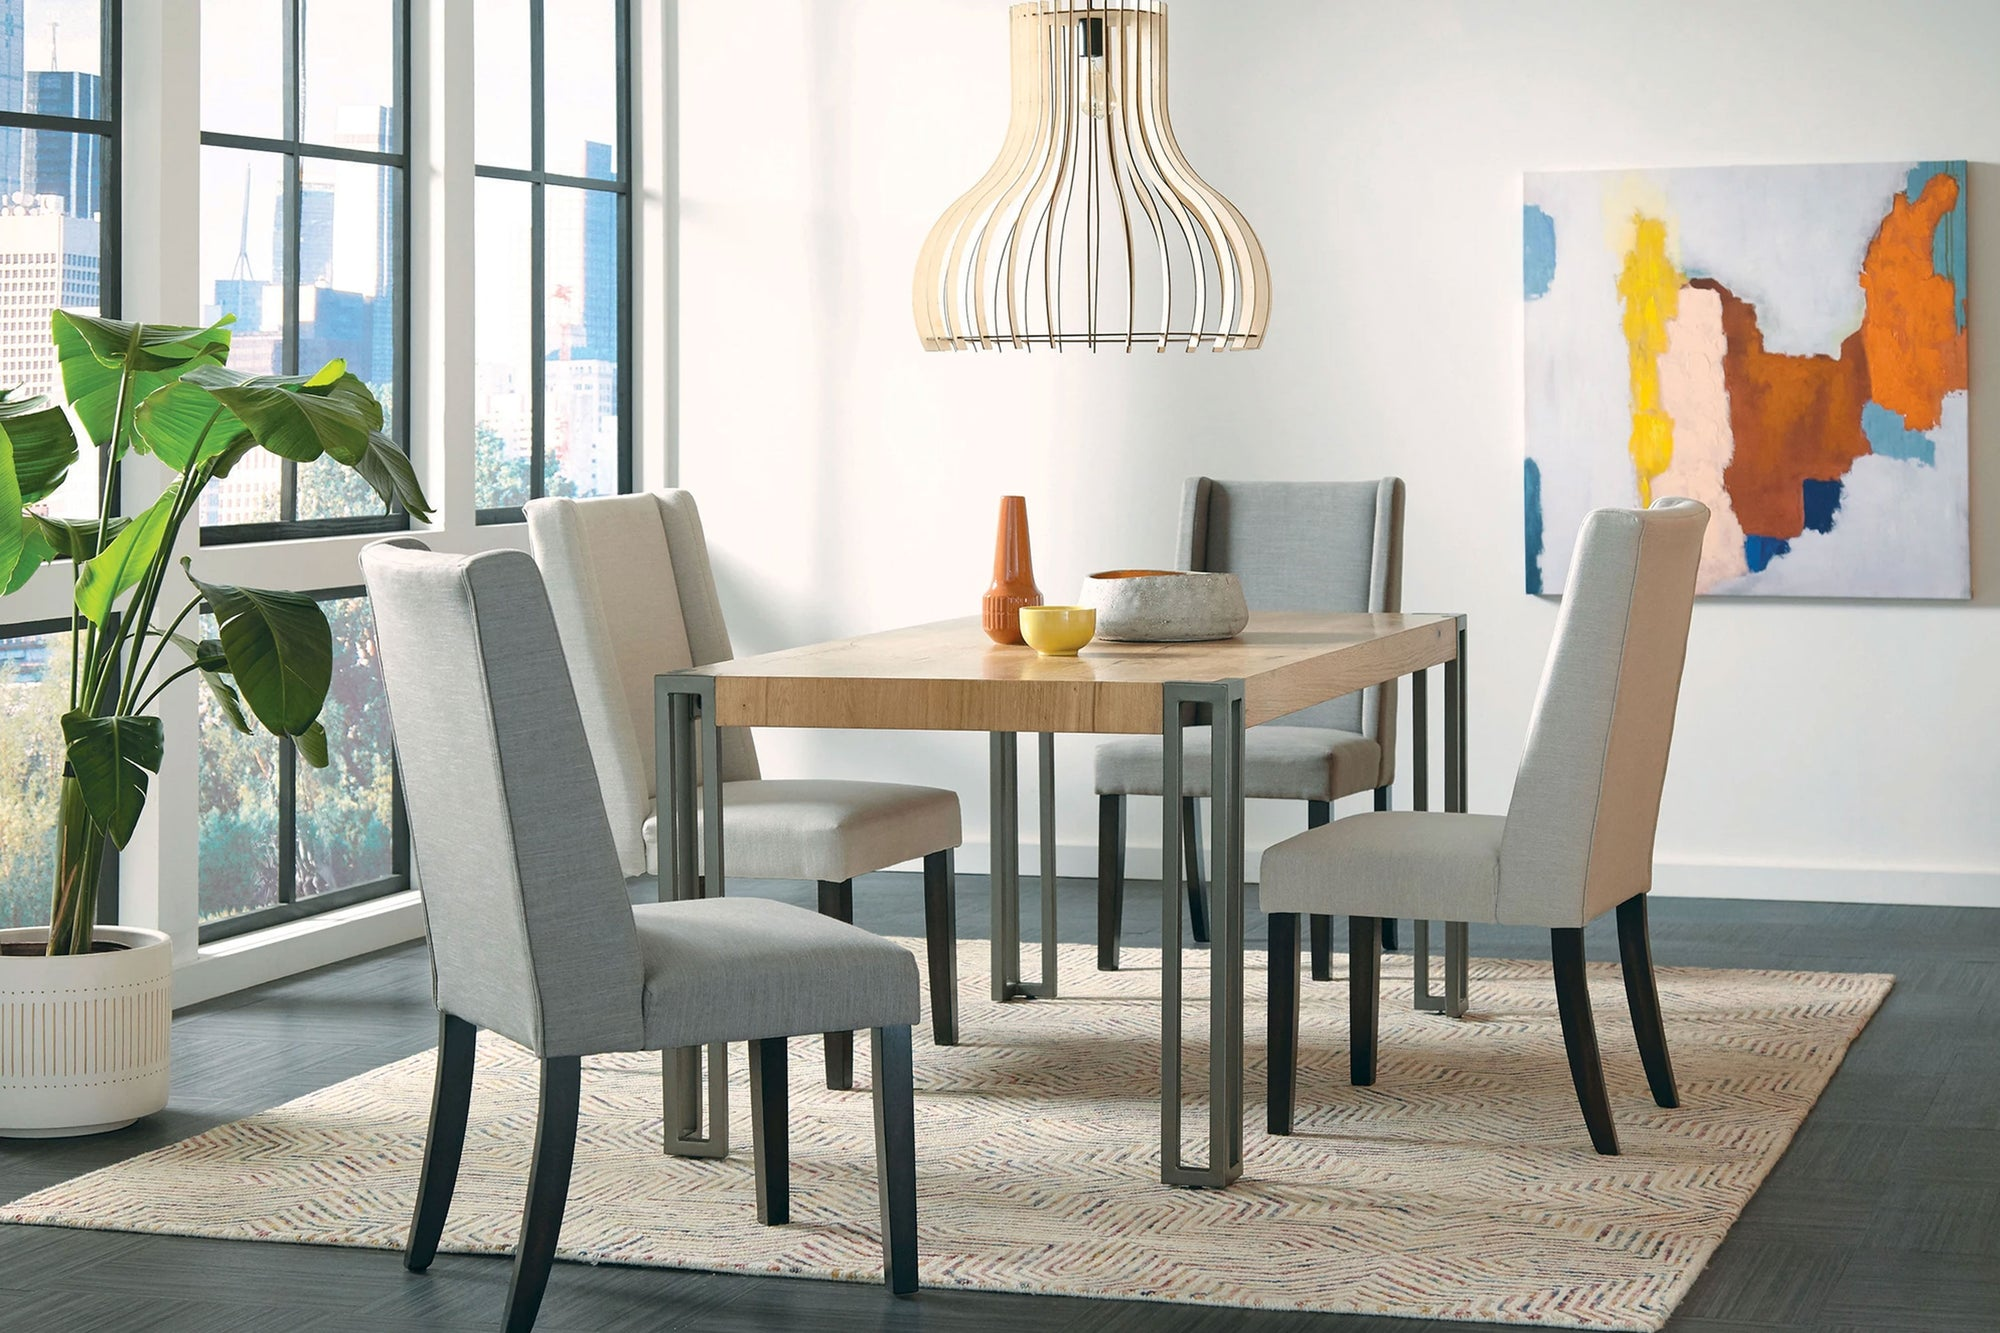 Mix and create your favorite Dining Set